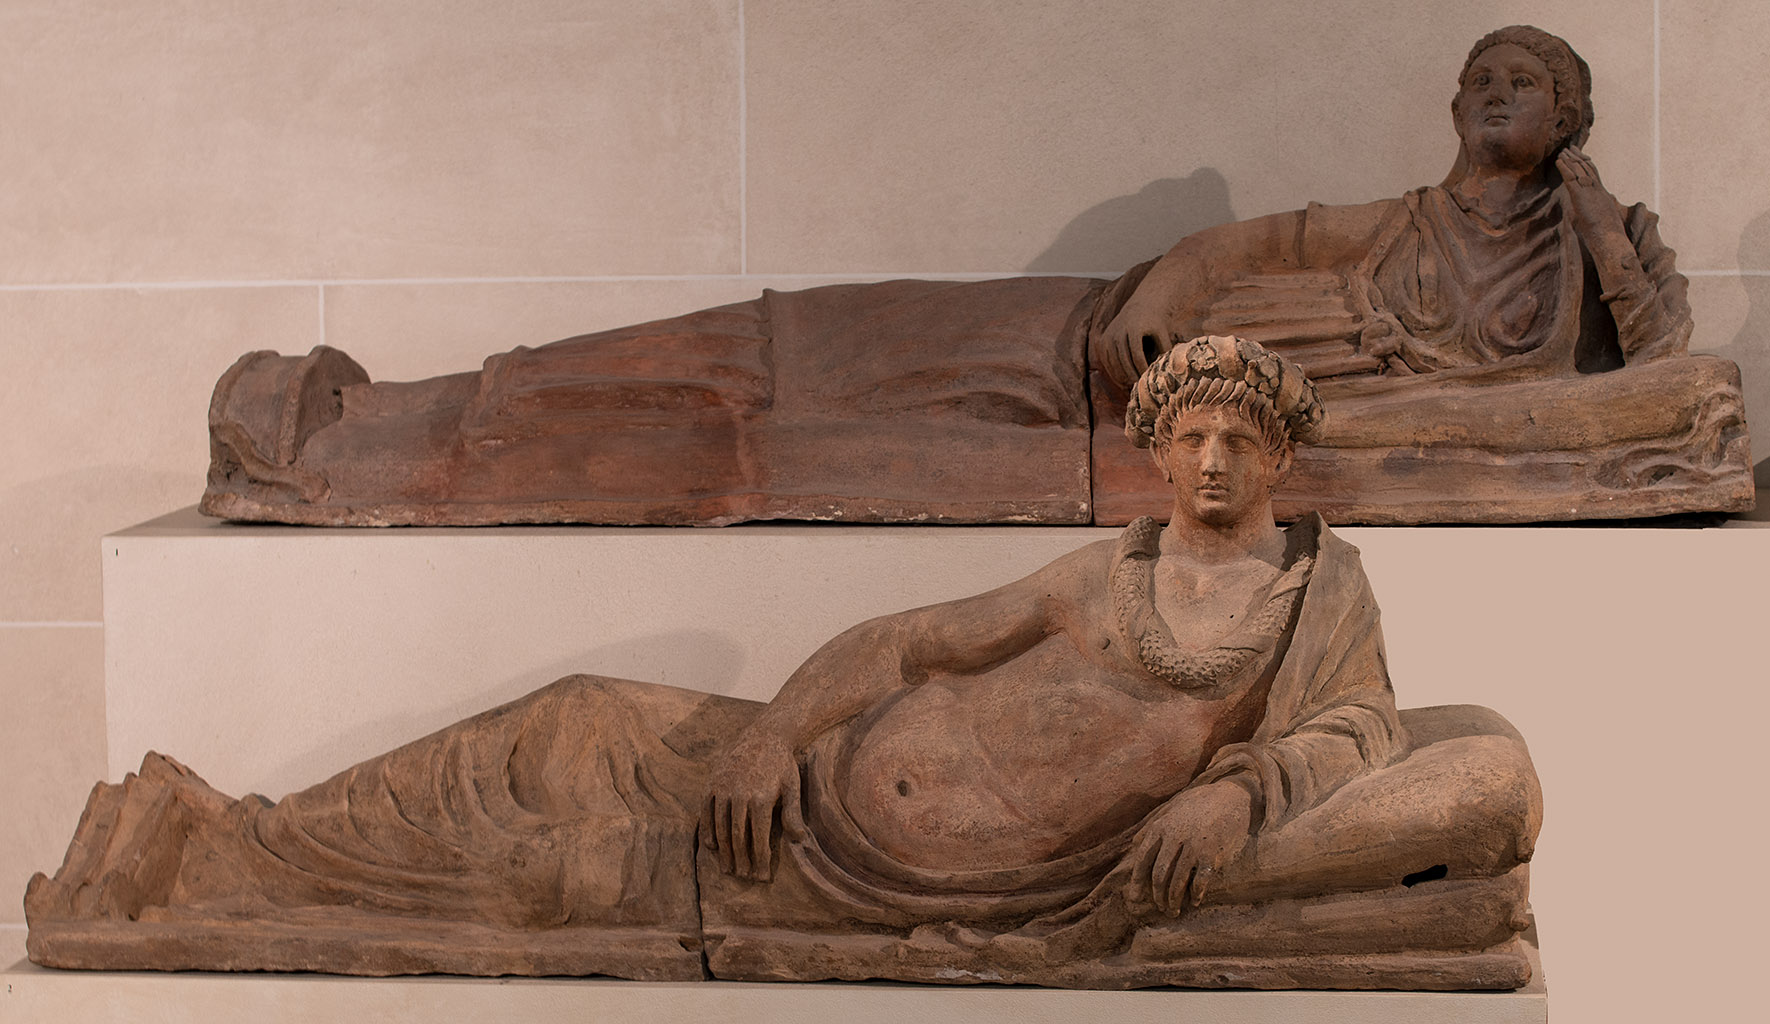 Lid of a terracotta sarcophagus with a figure of a reclining deceased woman. Lid of a terracotta sarcophagus with a figure of a reclining deceased man. Toscana. Terracotta. Mid-3rd century BCE. Paris, Louvre Museum